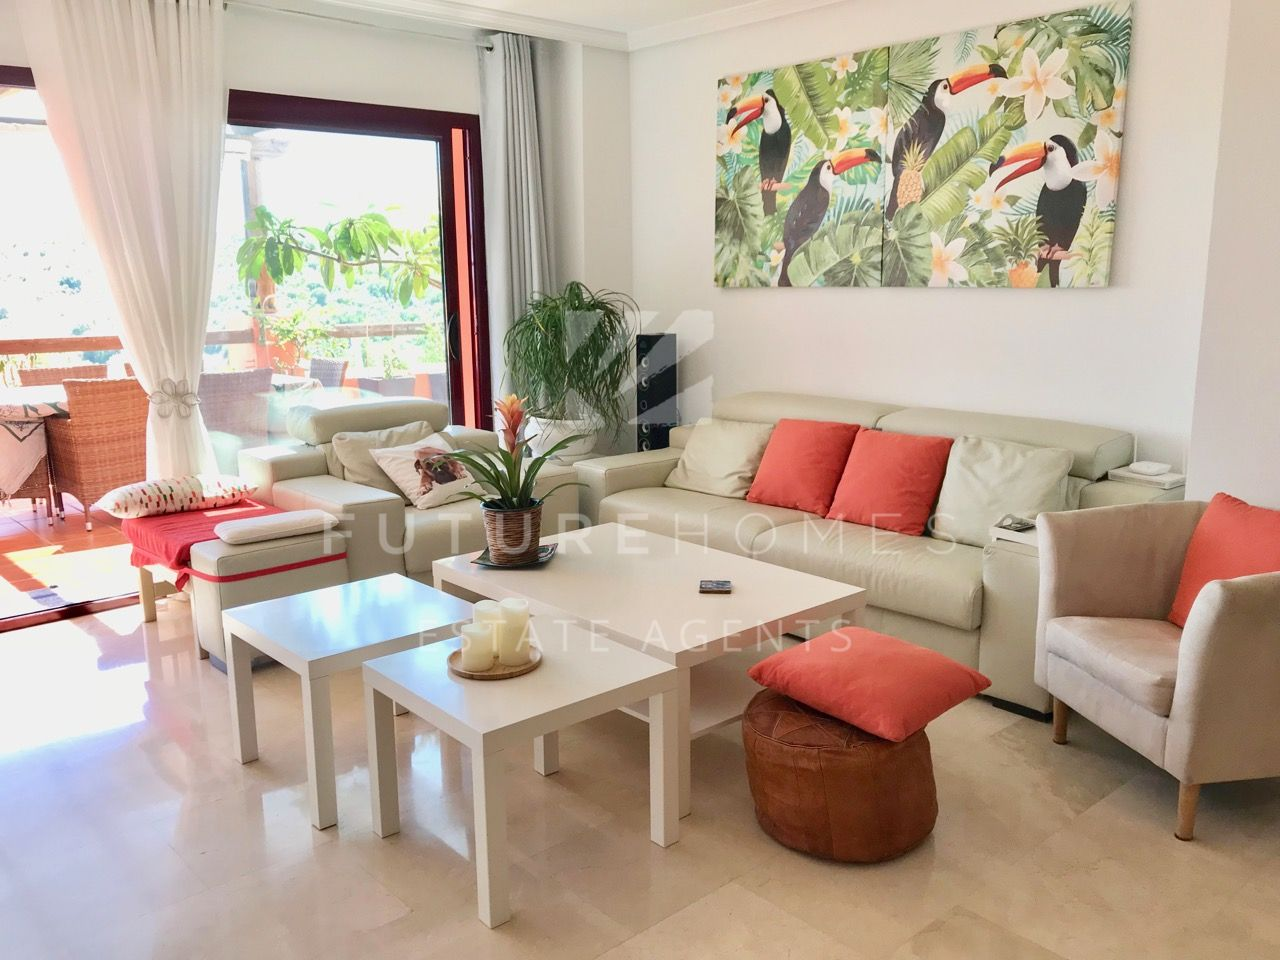 Immaculate and spacious apartment in Casares Golf, 5 minutes drive from the beach!